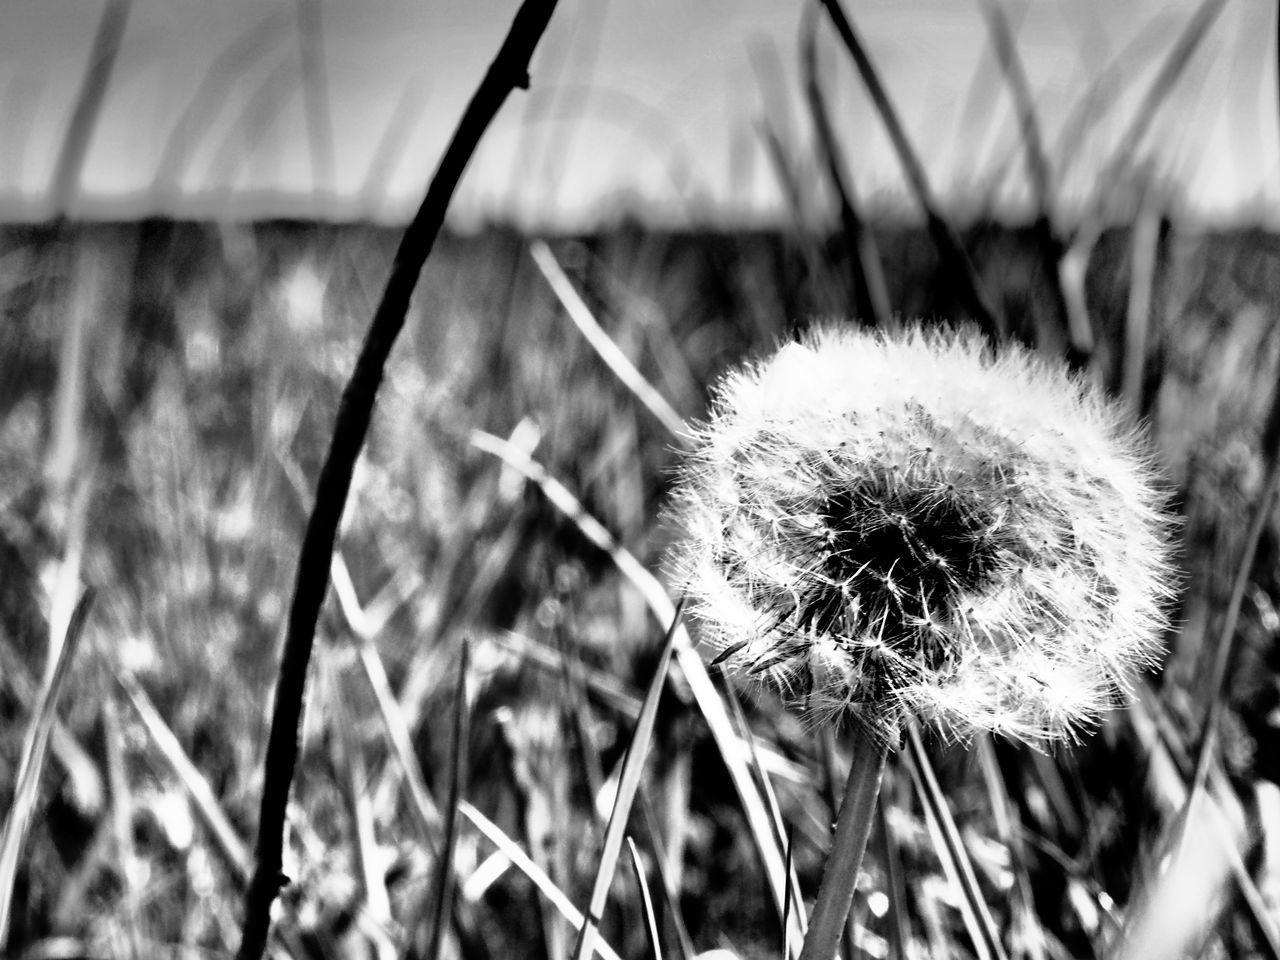 flower, nature, dandelion, focus on foreground, growth, plant, close-up, fragility, outdoors, day, flower head, no people, freshness, beauty in nature